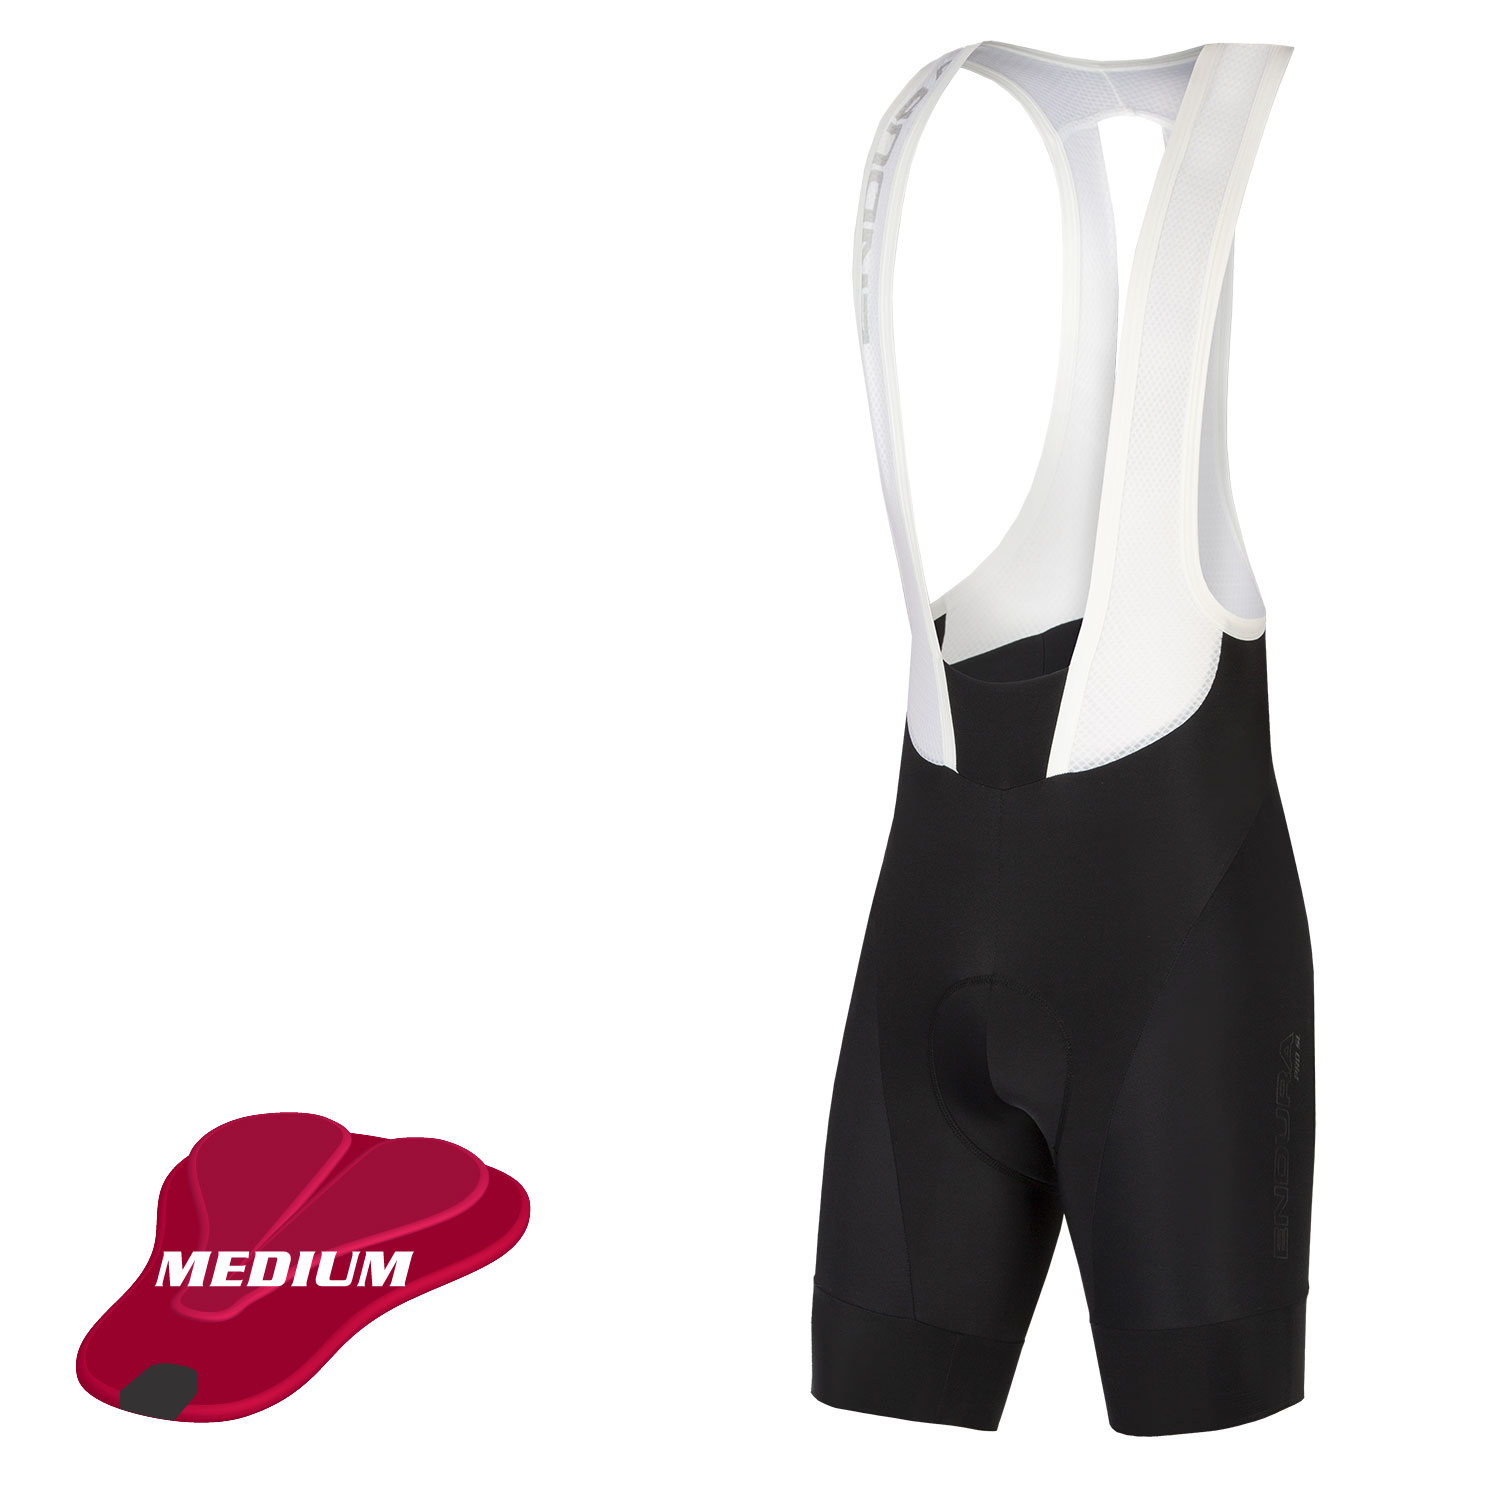 Pro SL Bibshort II Long Leg (medium-pad) Black